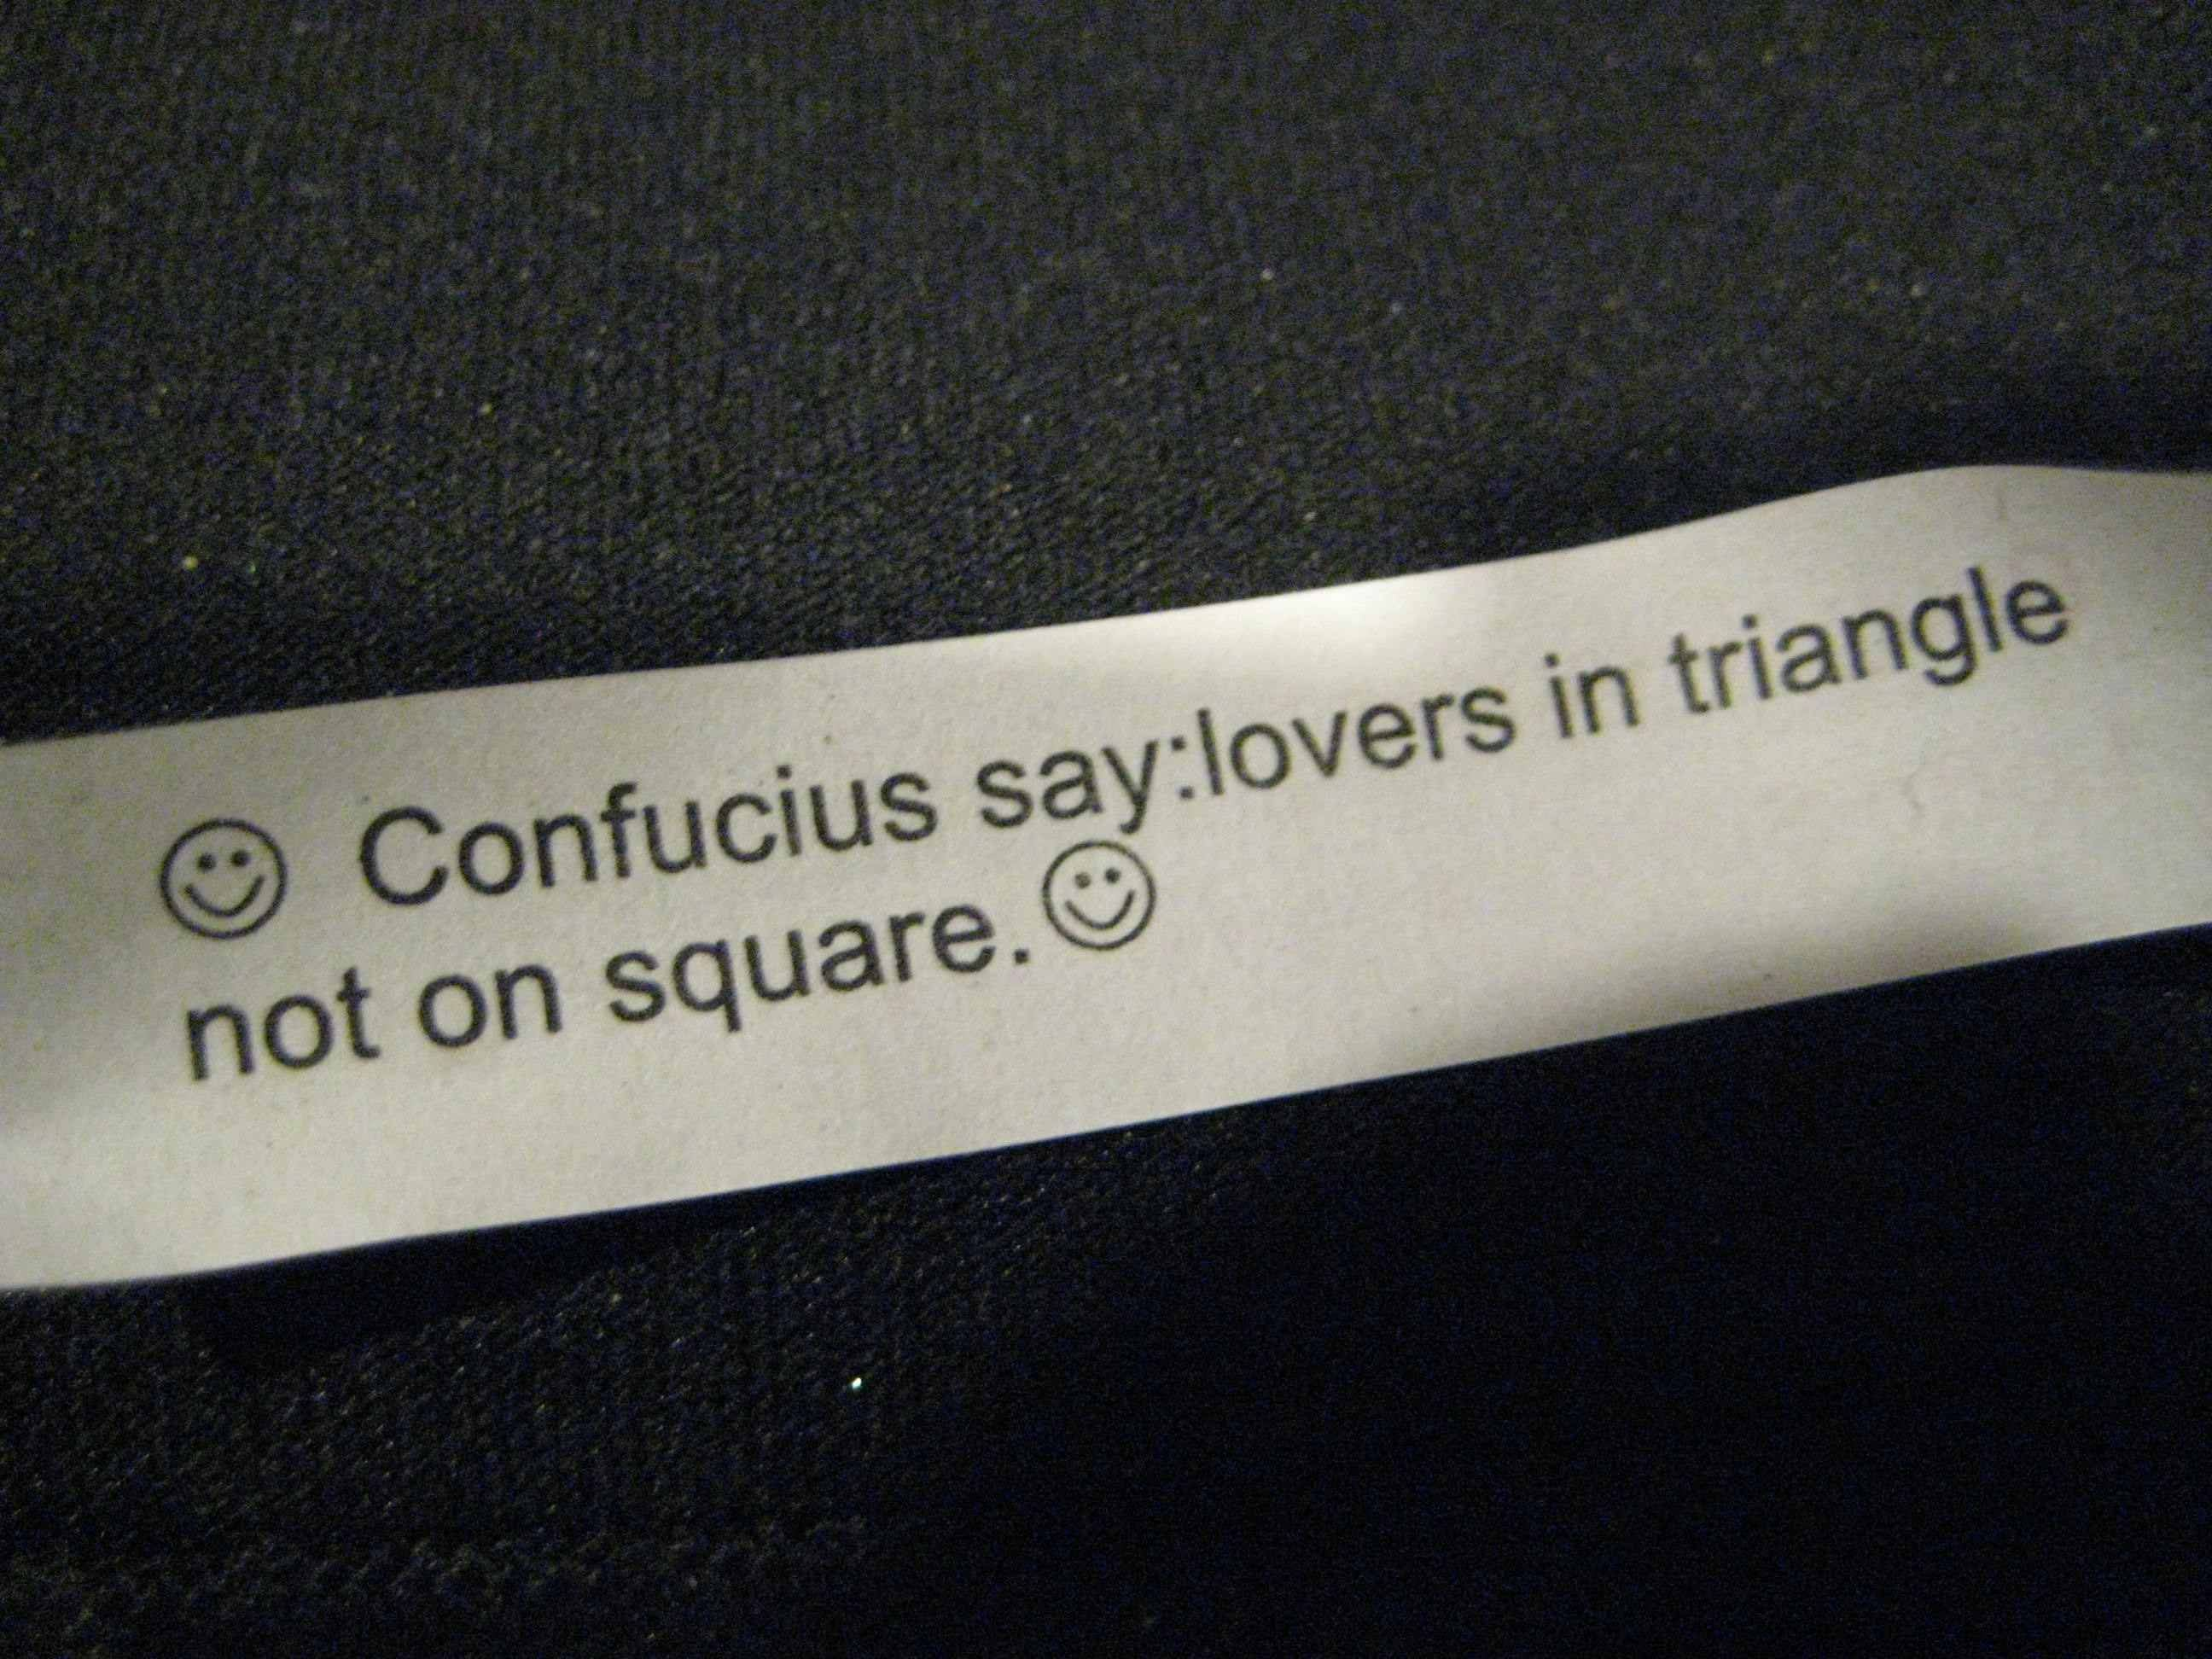 Confucius say, lovers in triangle, not on square.